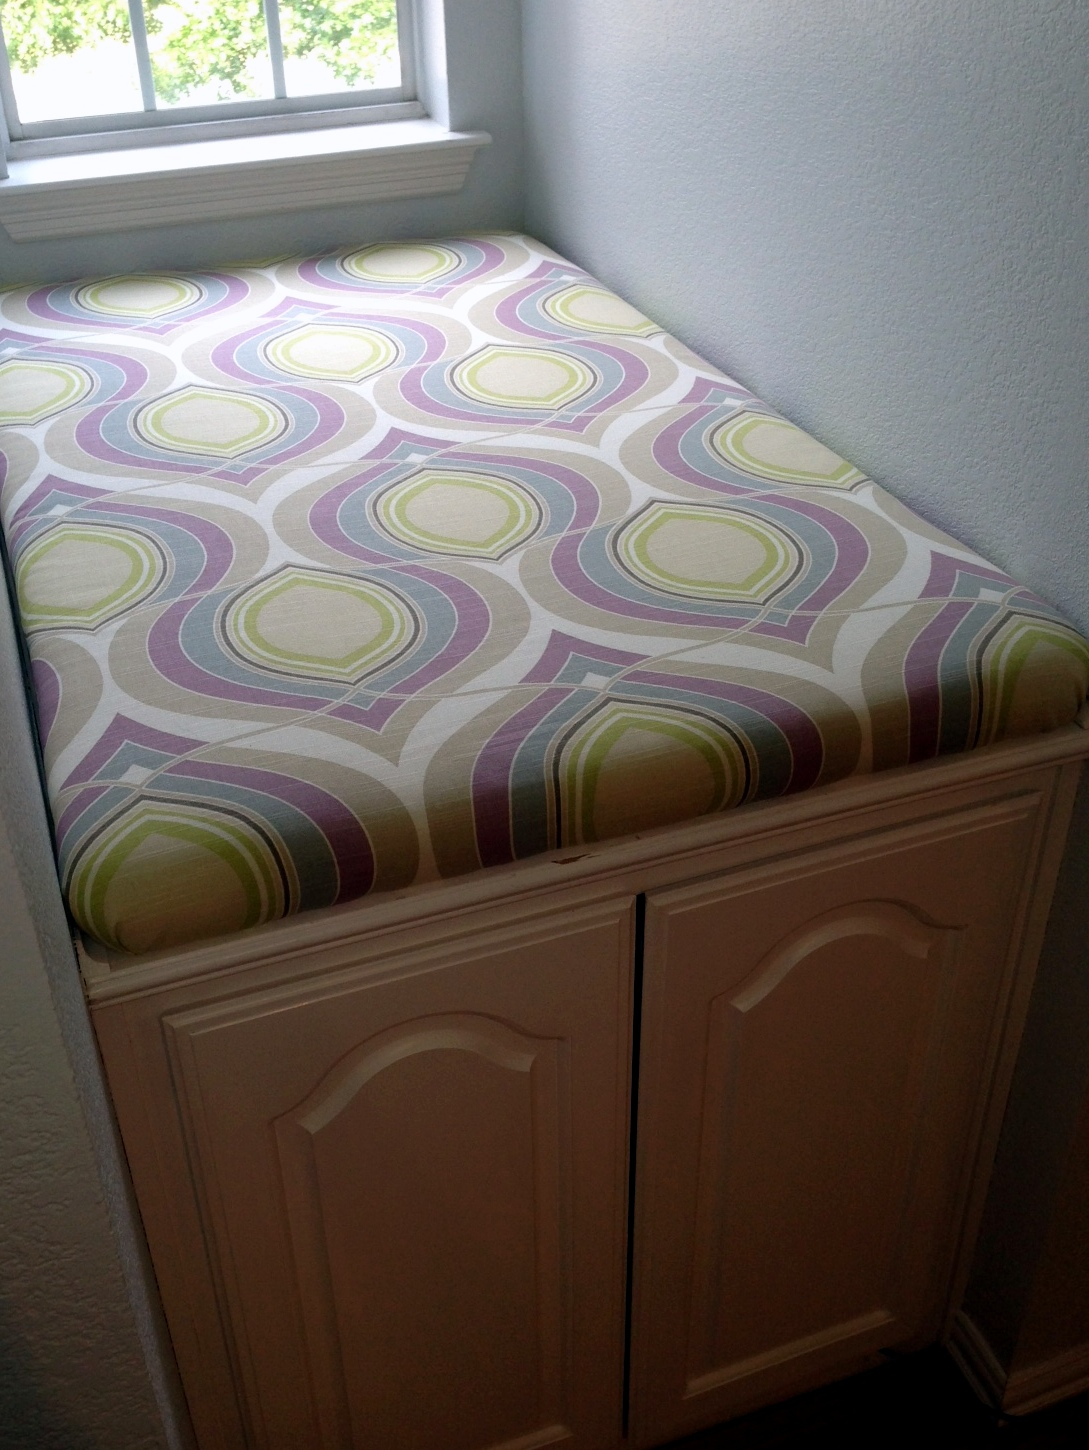 diy chair cushion no sew small kitchen island with chairs window seat cushions a nester 39s nest